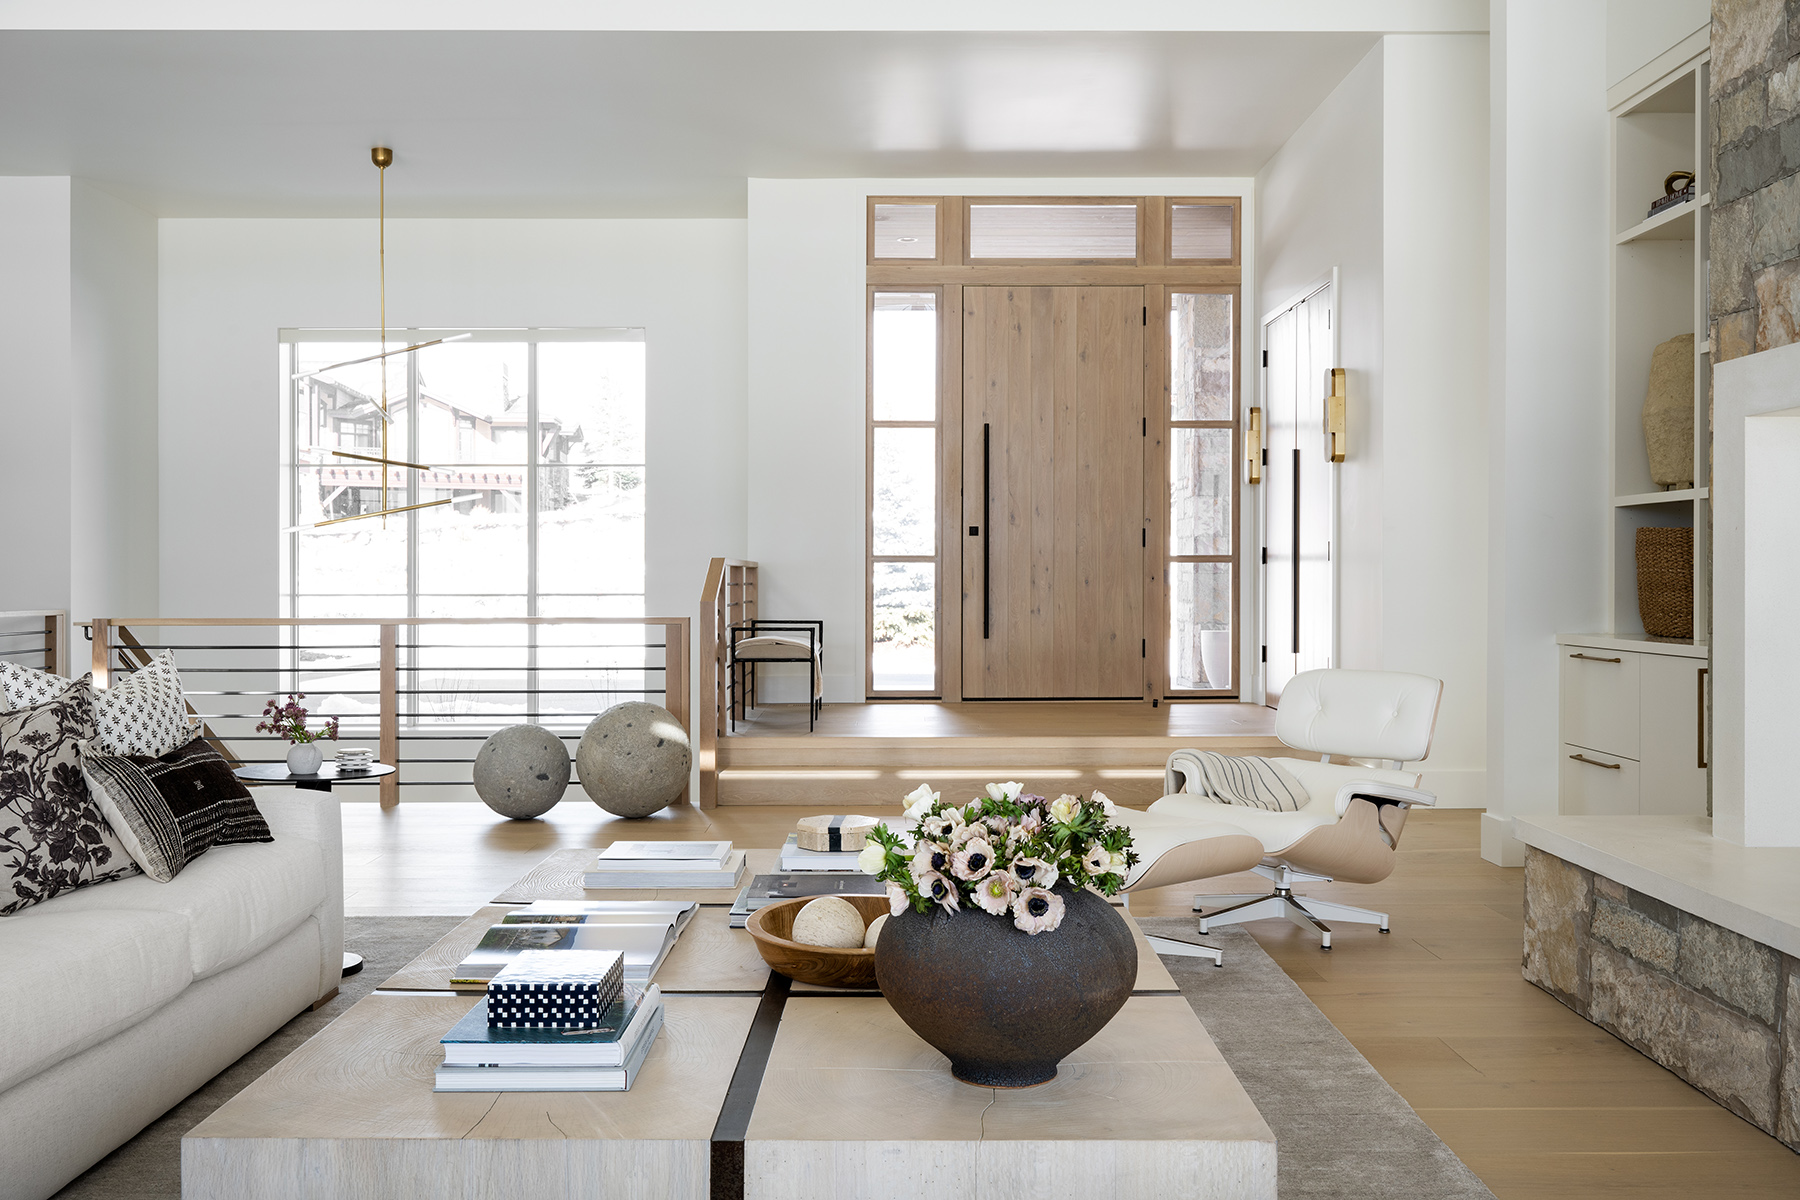 Design Tips From our PC Contemporary Project